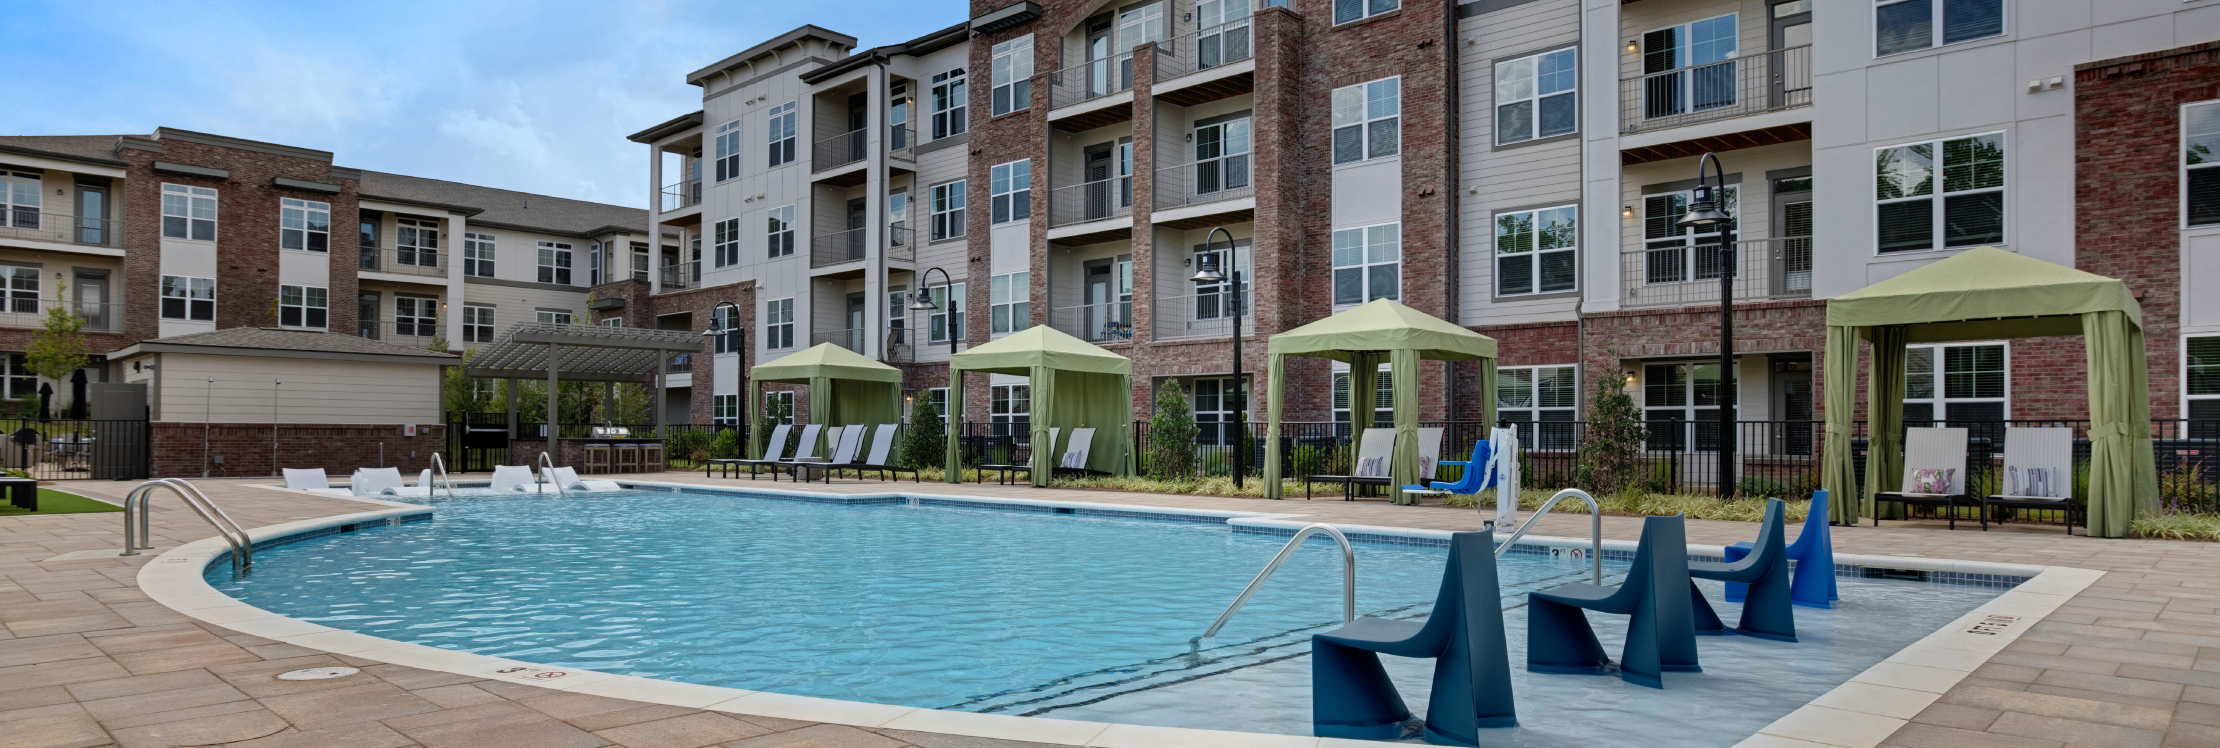 Apartments @ Eleven240 reviews | 11240 Woolwich - Charlotte NC